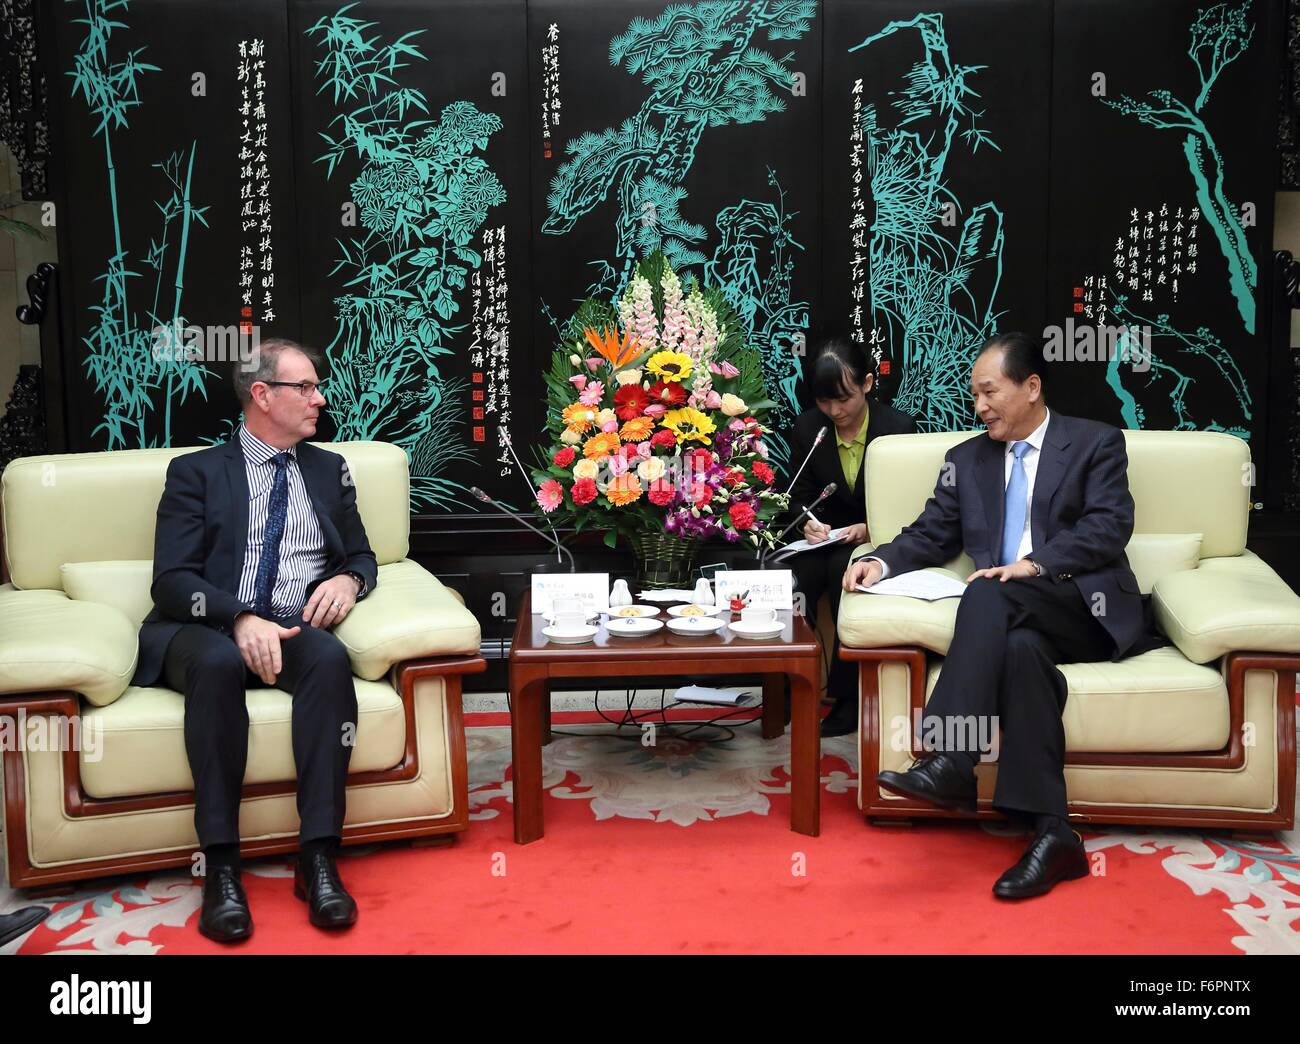 Beijing, China. 18th Nov, 2015. Xinhua News Agency President Cai Mingzhao (R) meets with Australian Associated Press - Stock Image